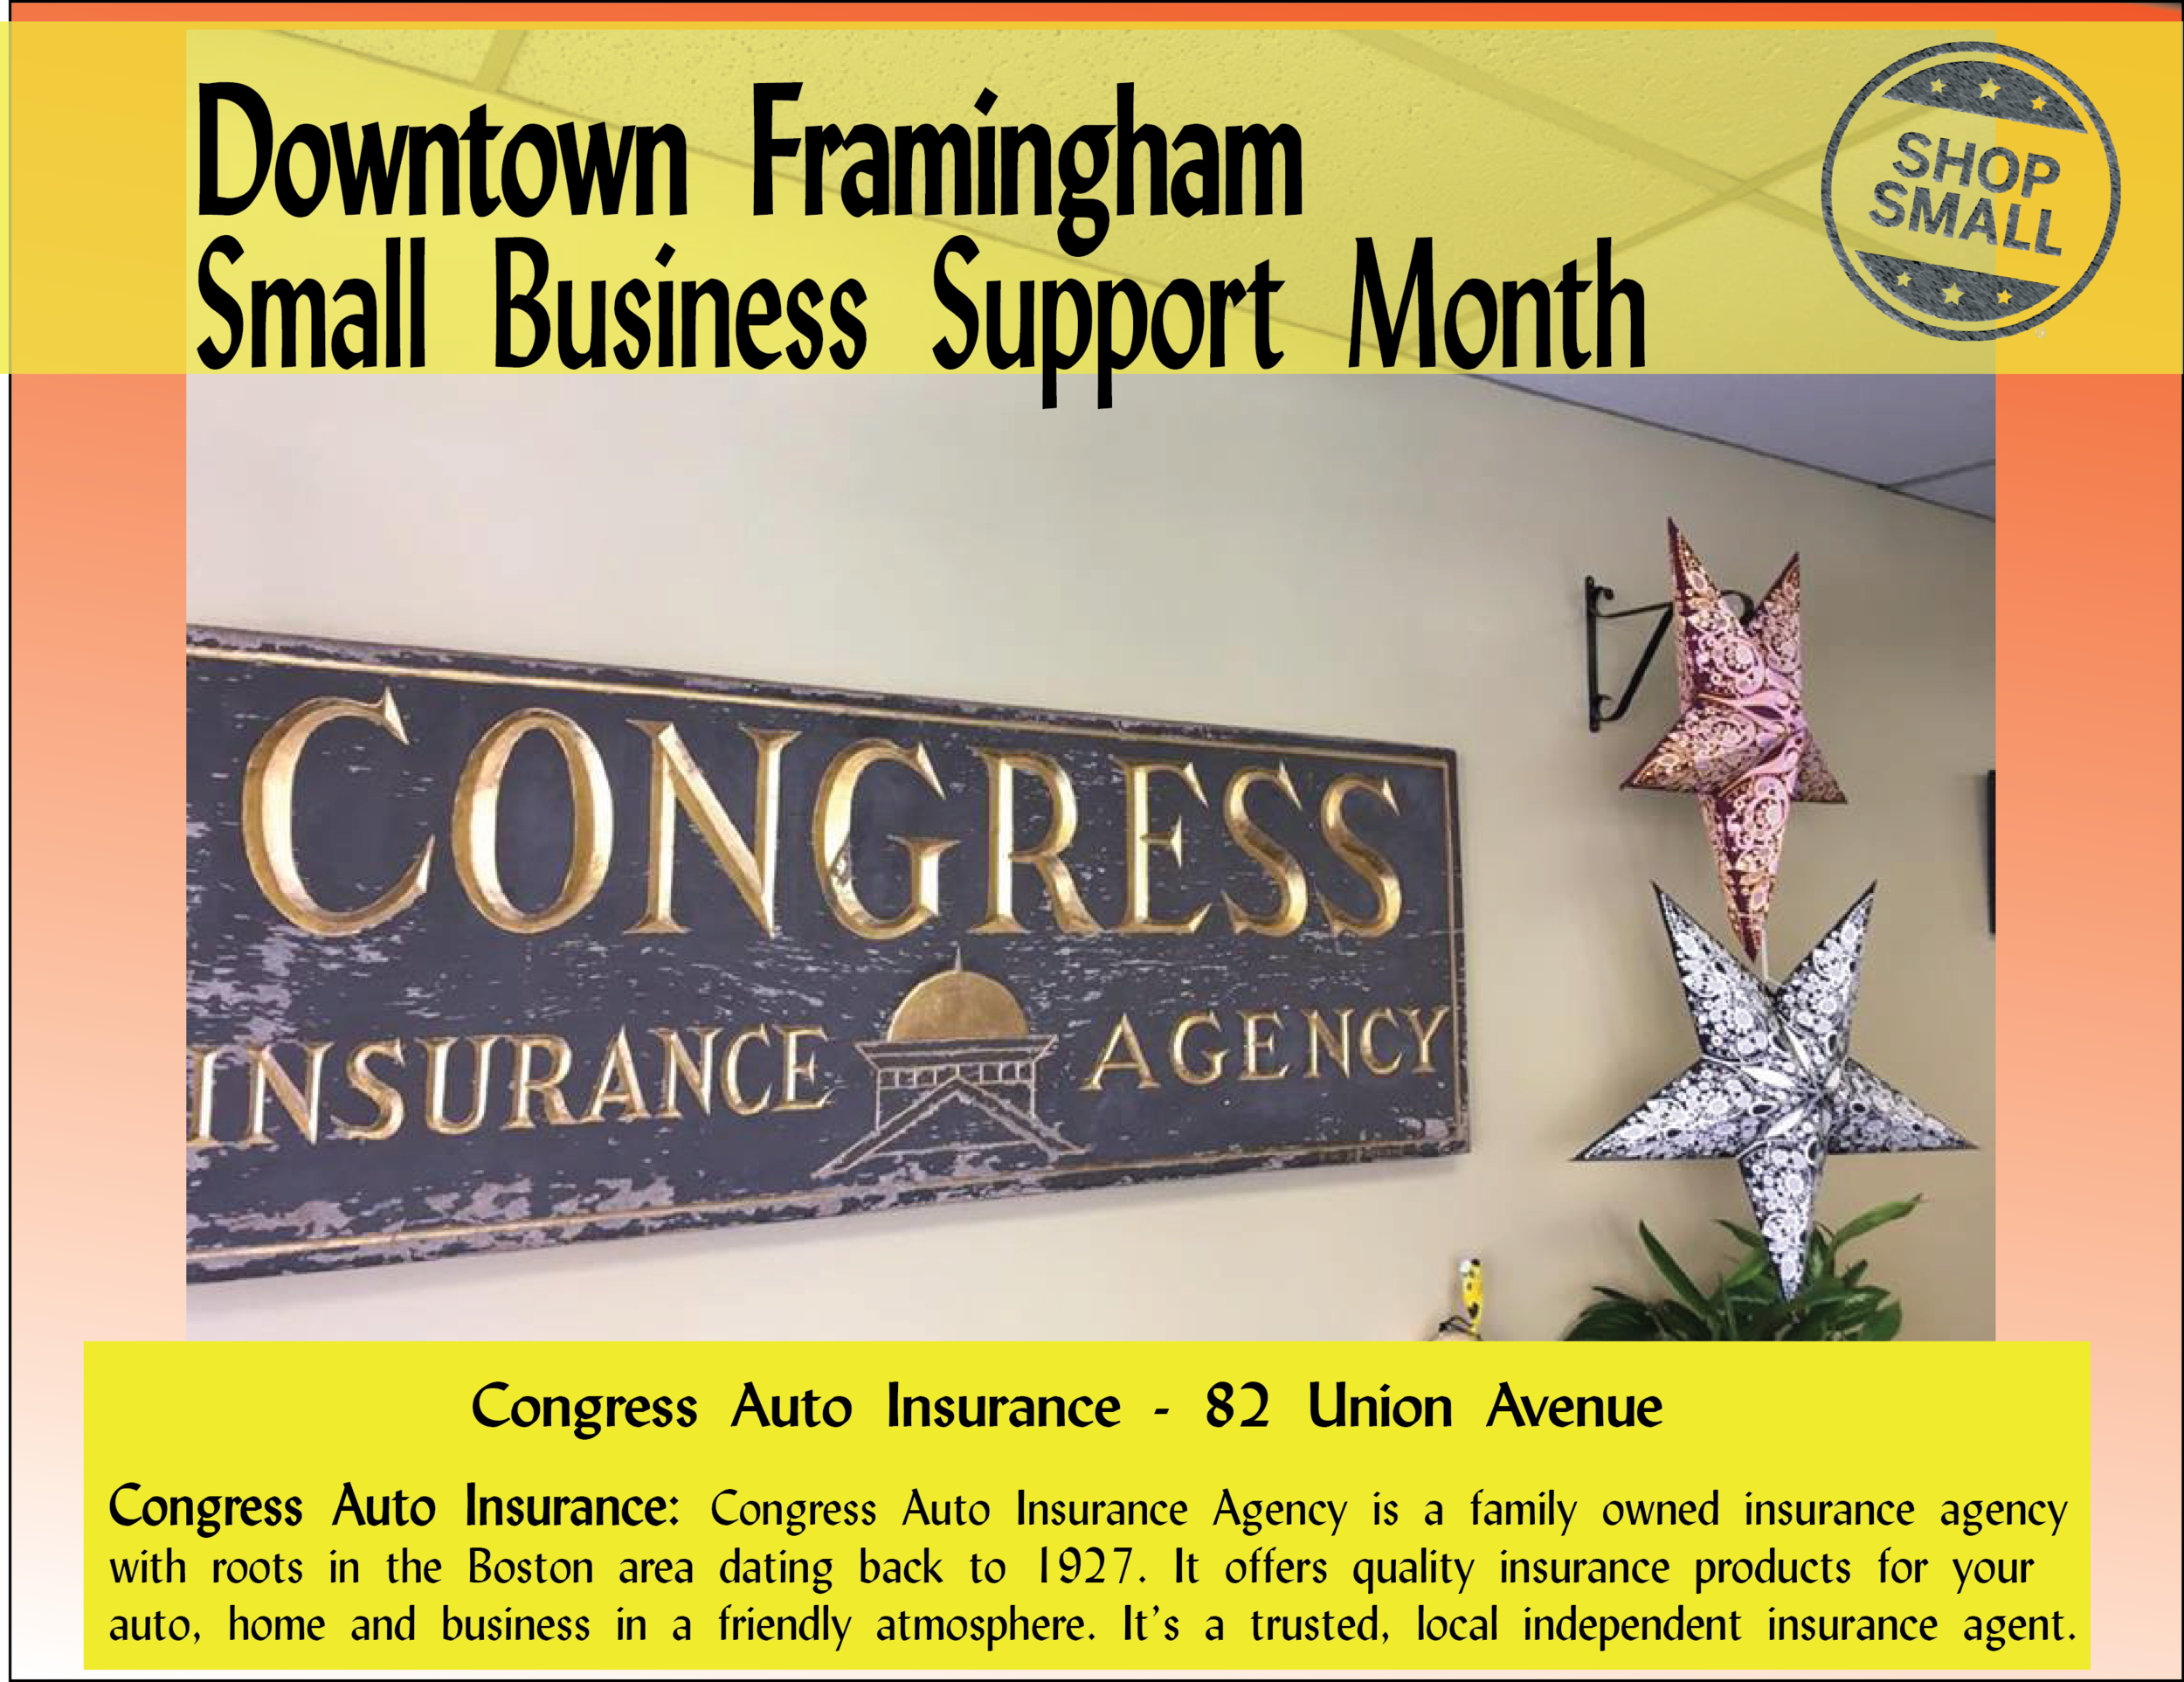 """It's Day 6 of Small Business Support Month: Reason #6:  """"It helps keep communities diverse. By supporting small businesses, we're making sure independent businesses thrive by adding to the cultural vibrancy and uniqueness of a community."""" Speaking of thriving, Congress Auto Insurance Agency has been thriving downtown since 1927! Stop in and ask Laurie the secret to this long-lasting success."""